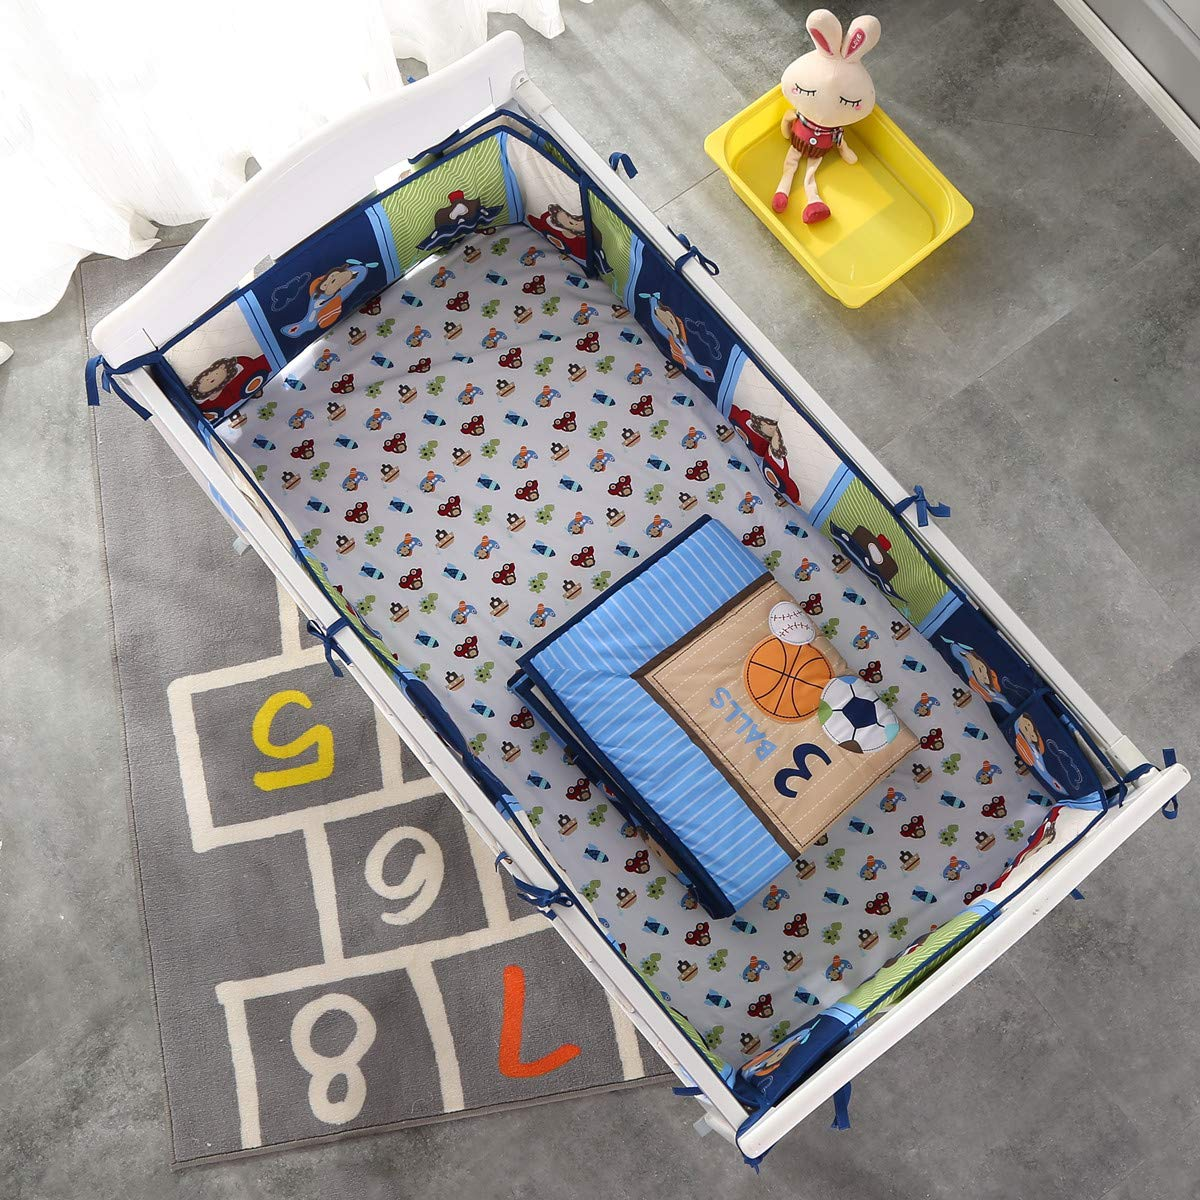 Wowelife Blue Crib Bedding Sets for Boys 7 Piece Travel Car and Airplane for Baby(Little Pilot) by Wowelife (Image #7)